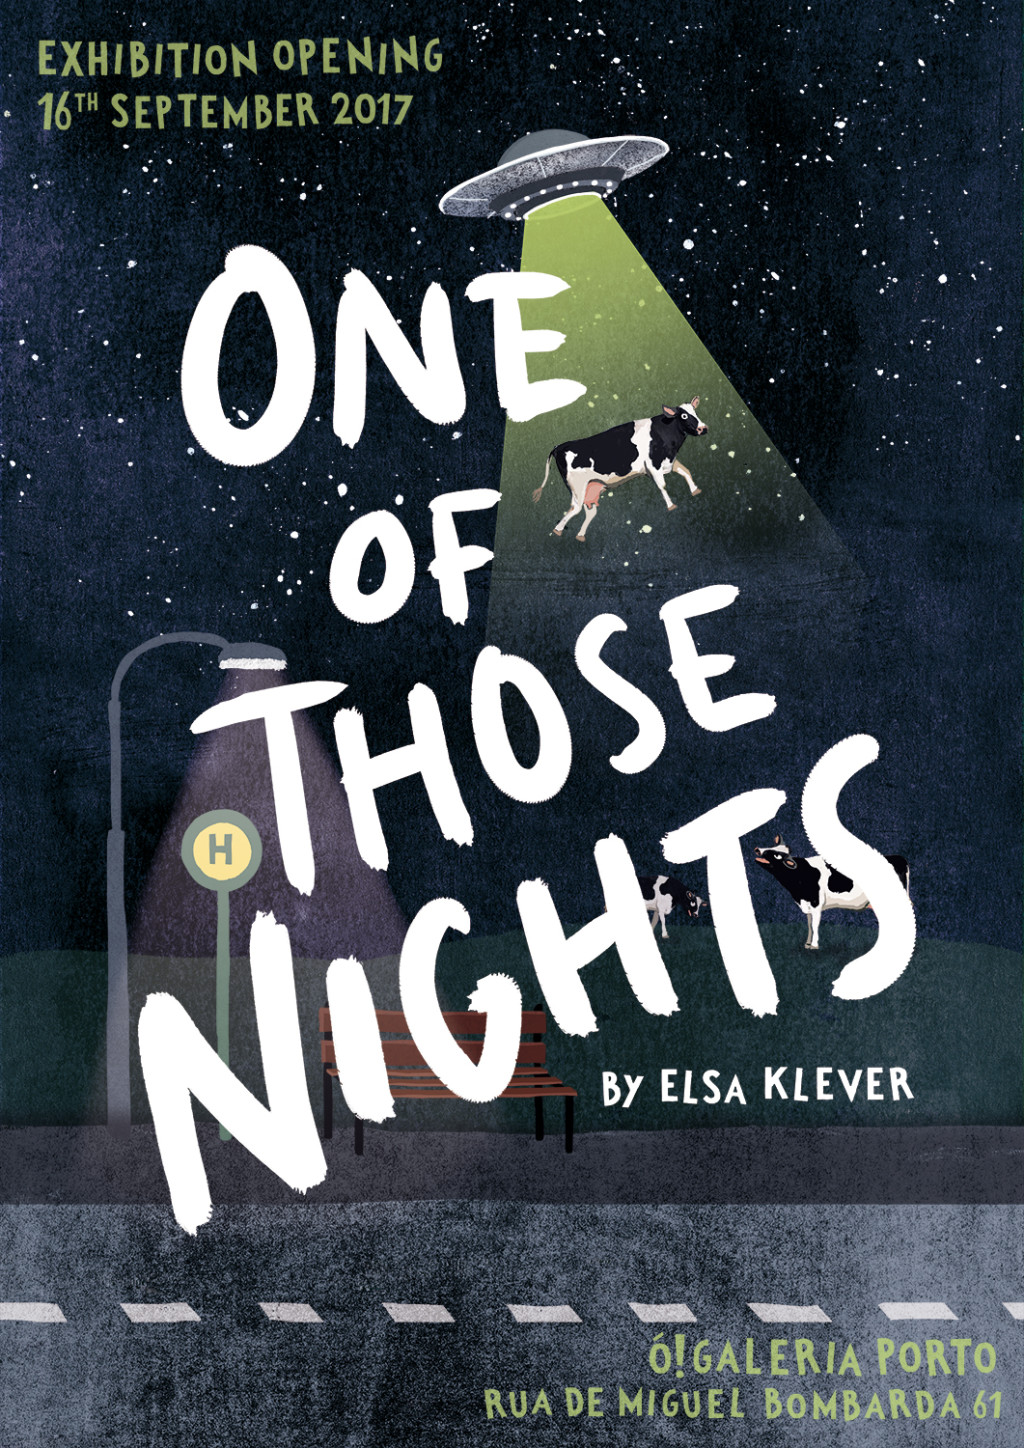 Elsa Klever Illustration One of those nights